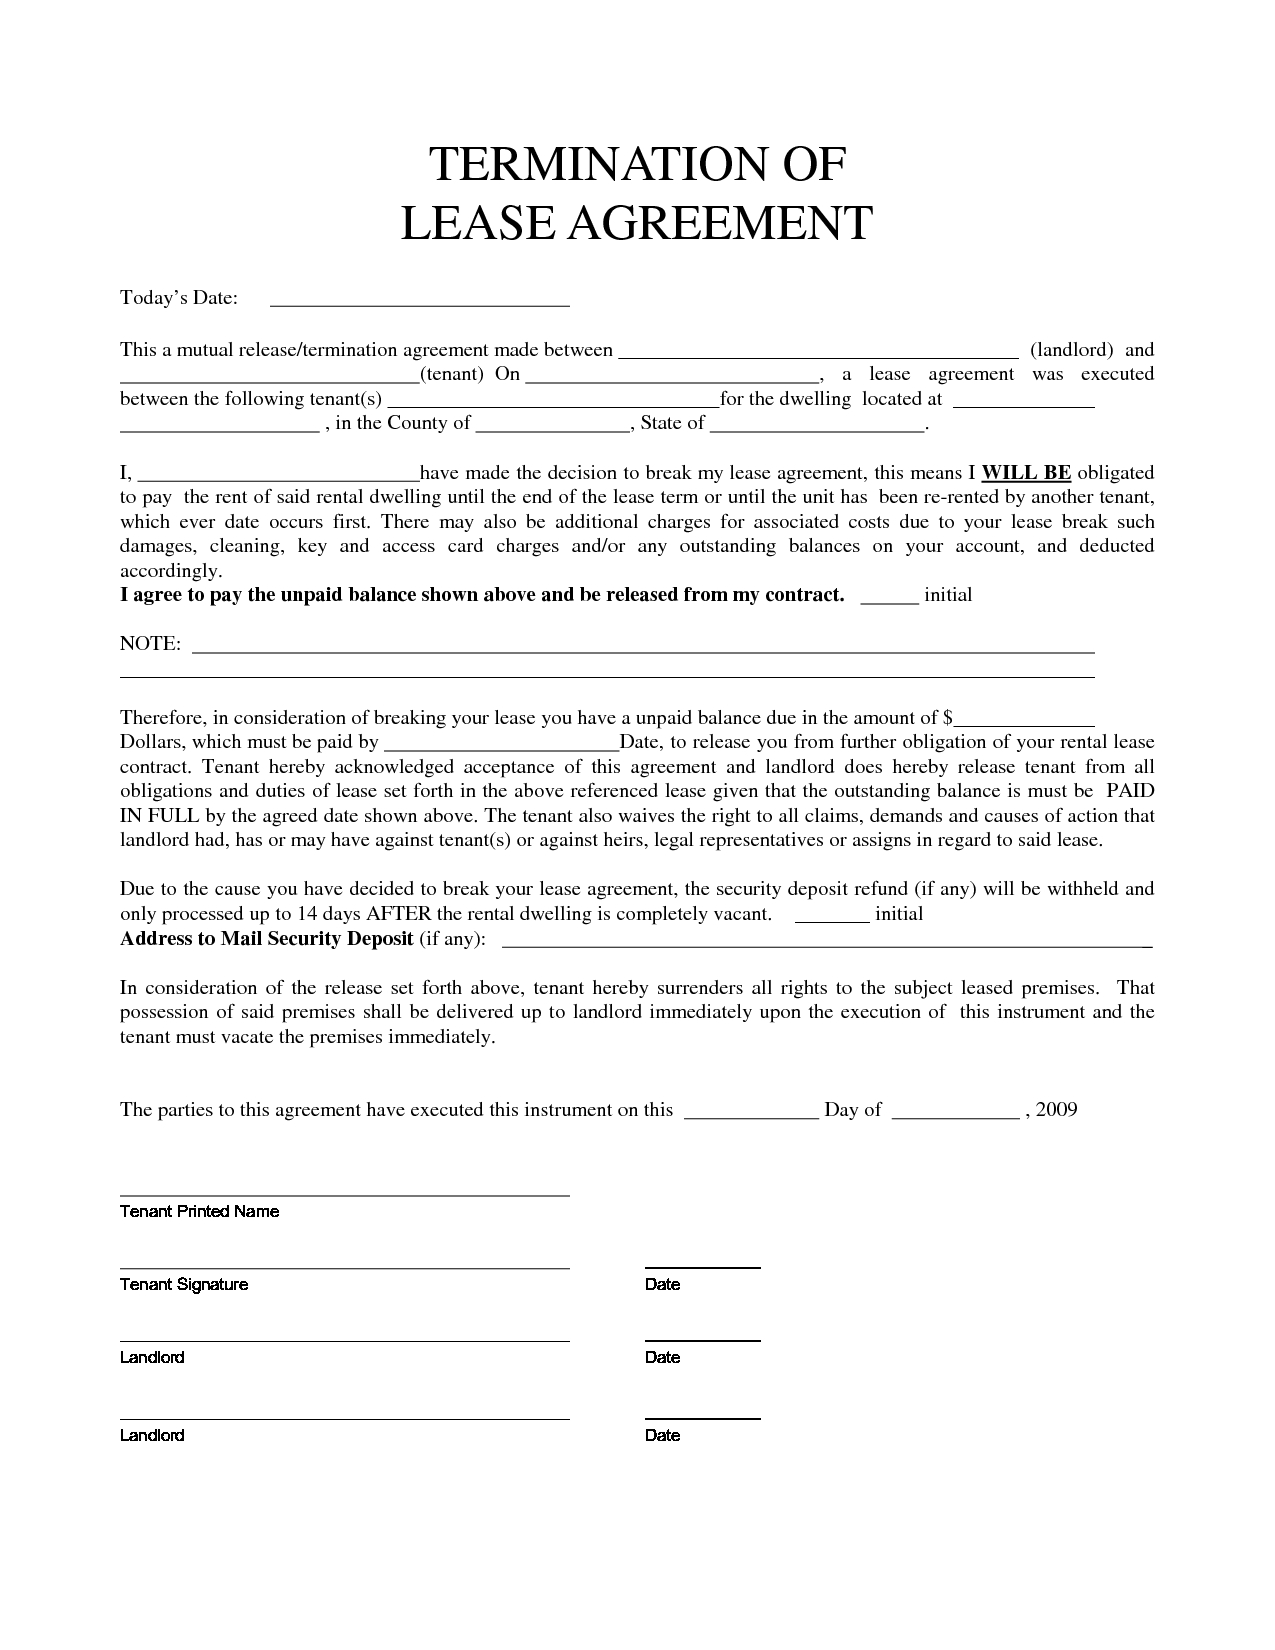 Early Lease Termination Letter to Landlord Template - Inspirational Early Lease Termination Letter Your Template